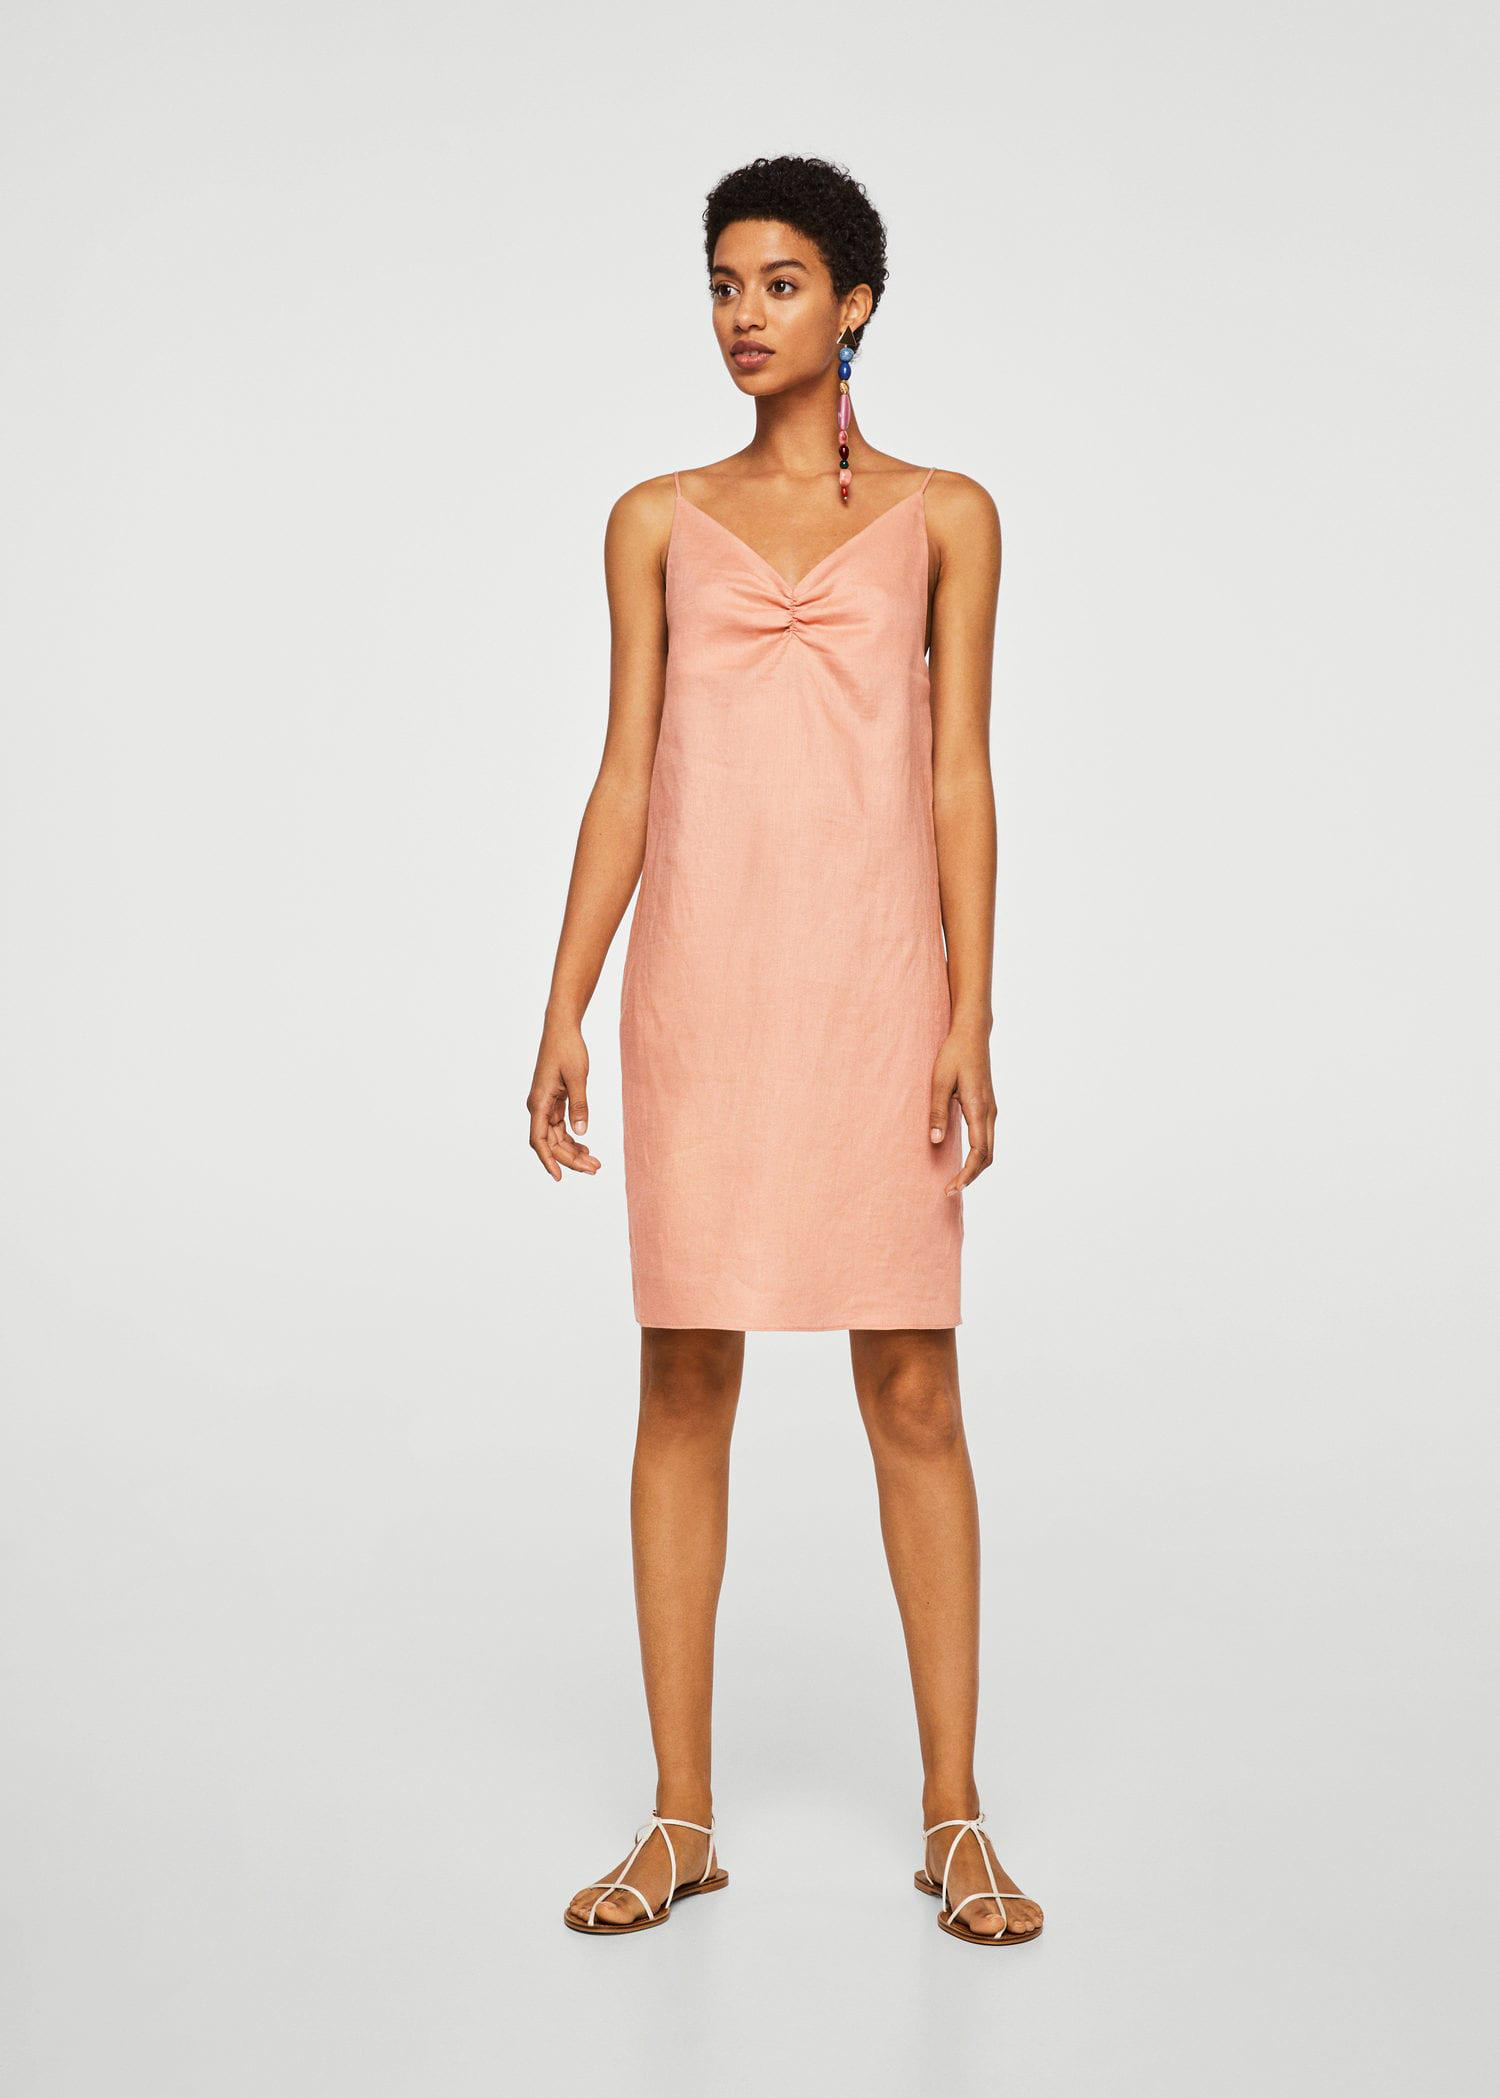 9d2ba707d5 Lyst - Mango Linen Strap Dress in Pink